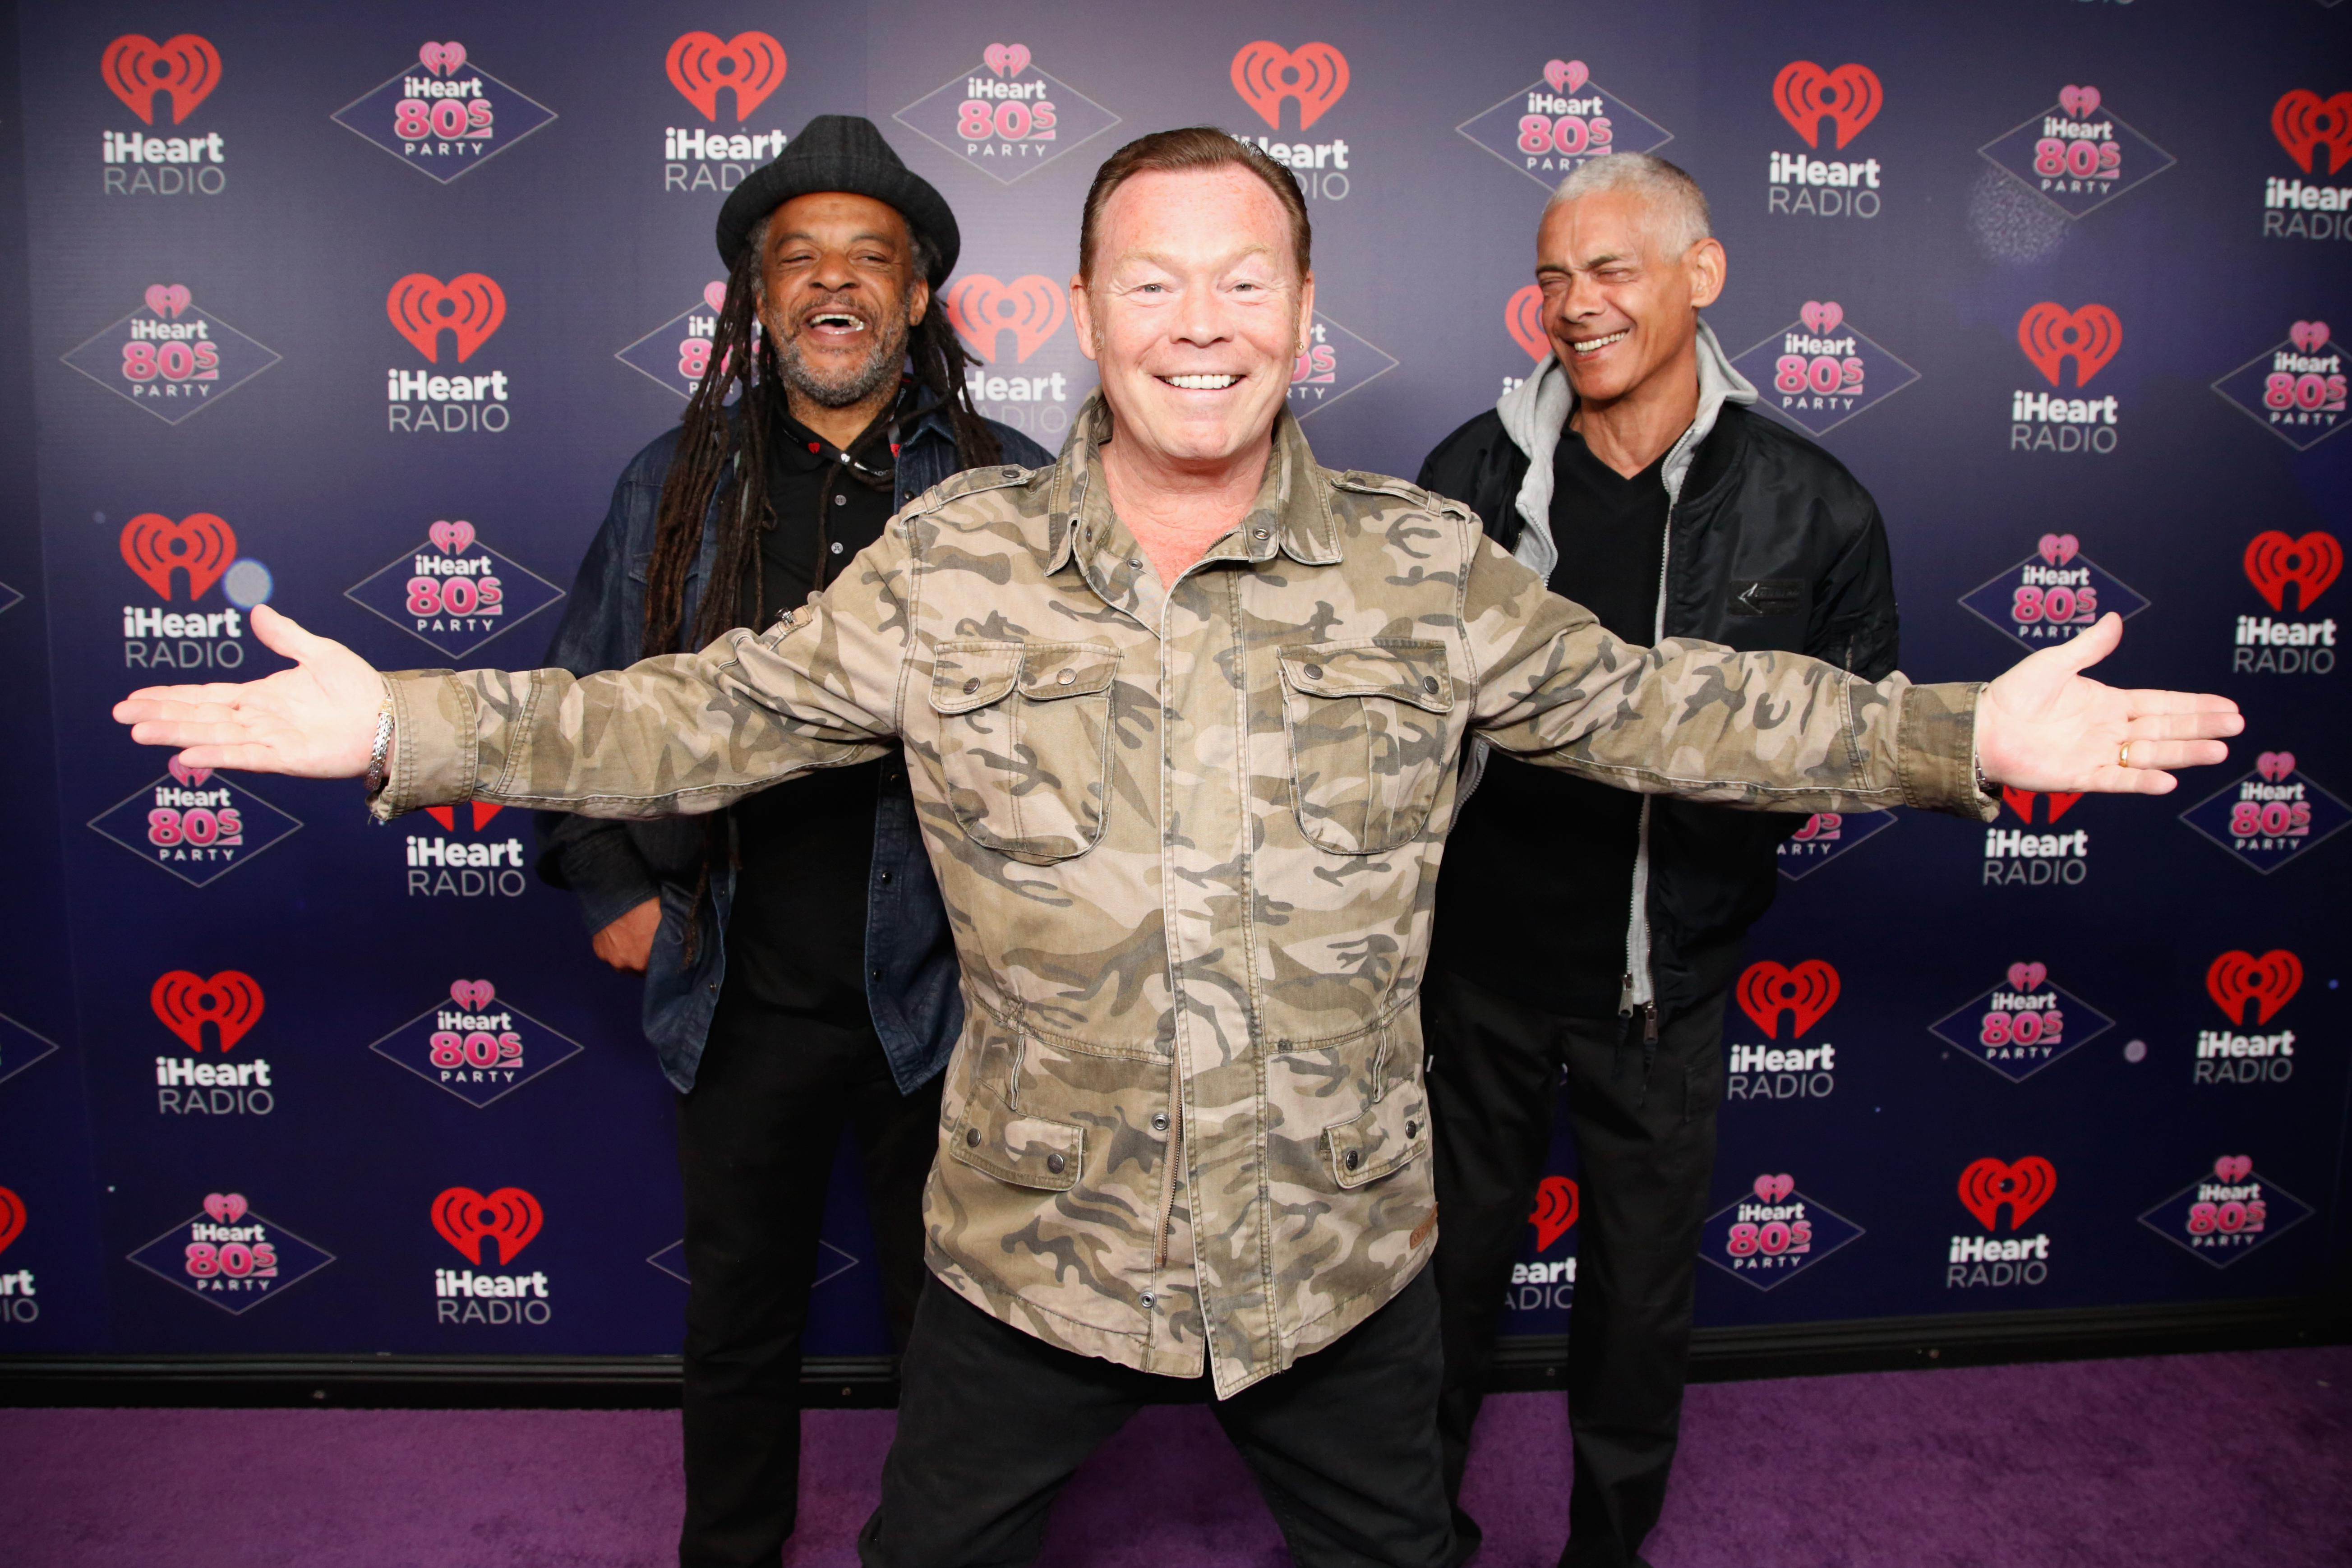 Astro, Ali Campbell, and Mickey Virtue, looking happy.